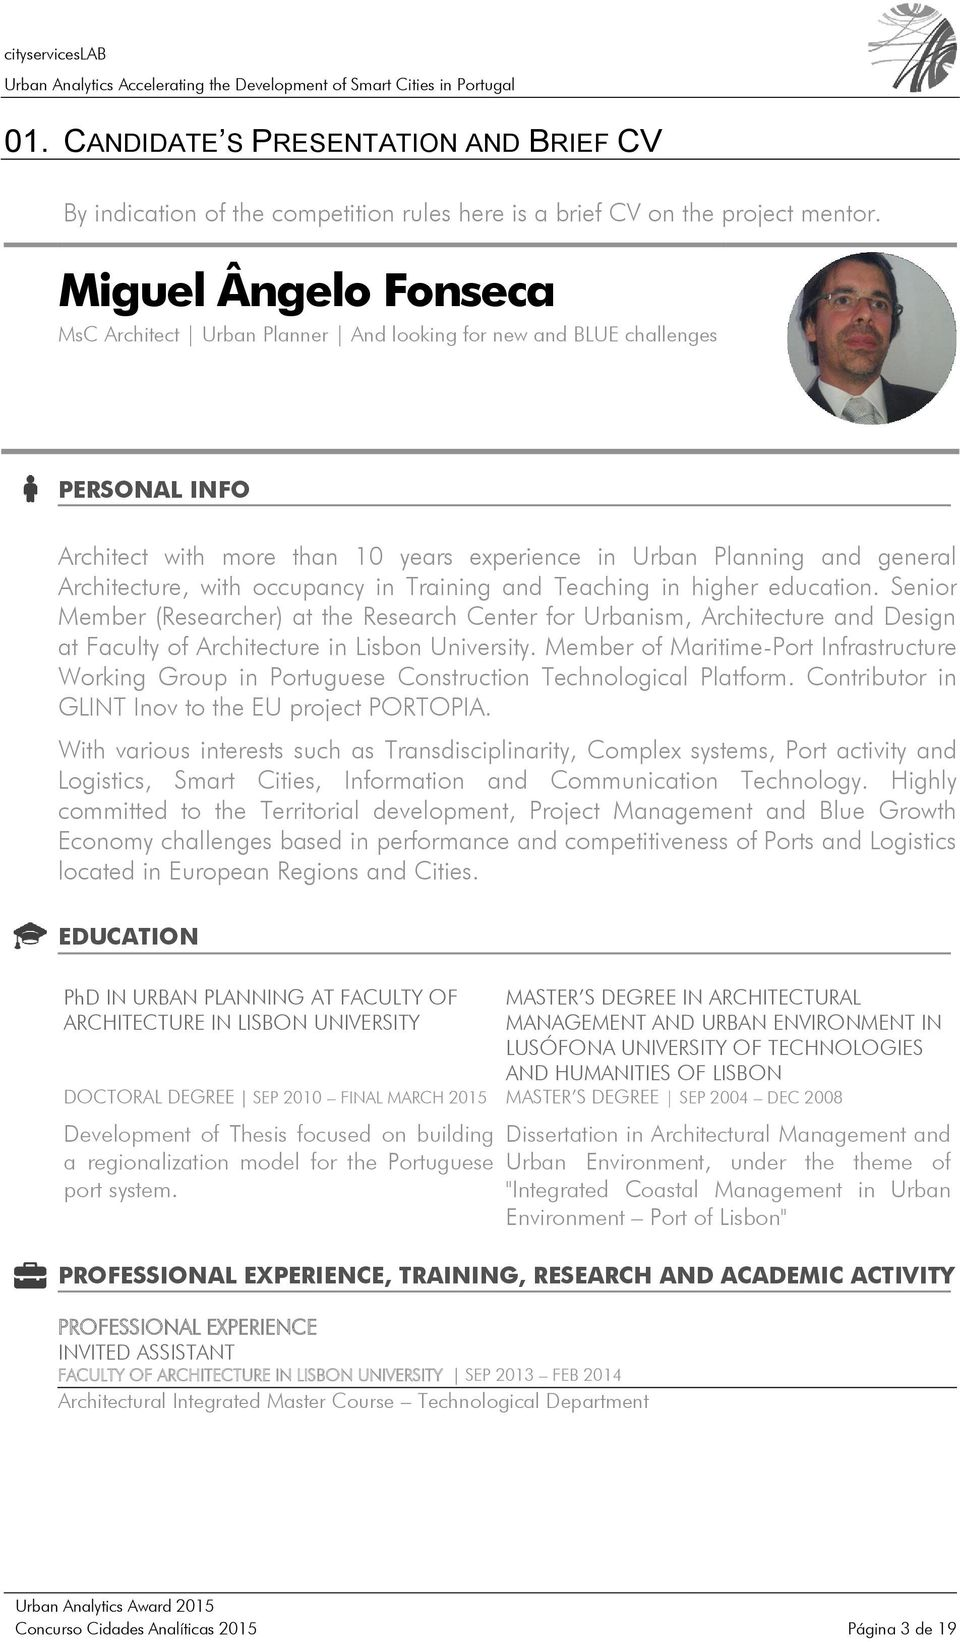 occupancy in Training and Teaching in higher education. Senior Member (Researcher) at the Research Center for Urbanism, Architecture and Design at Faculty of Architecture in Lisbon University.